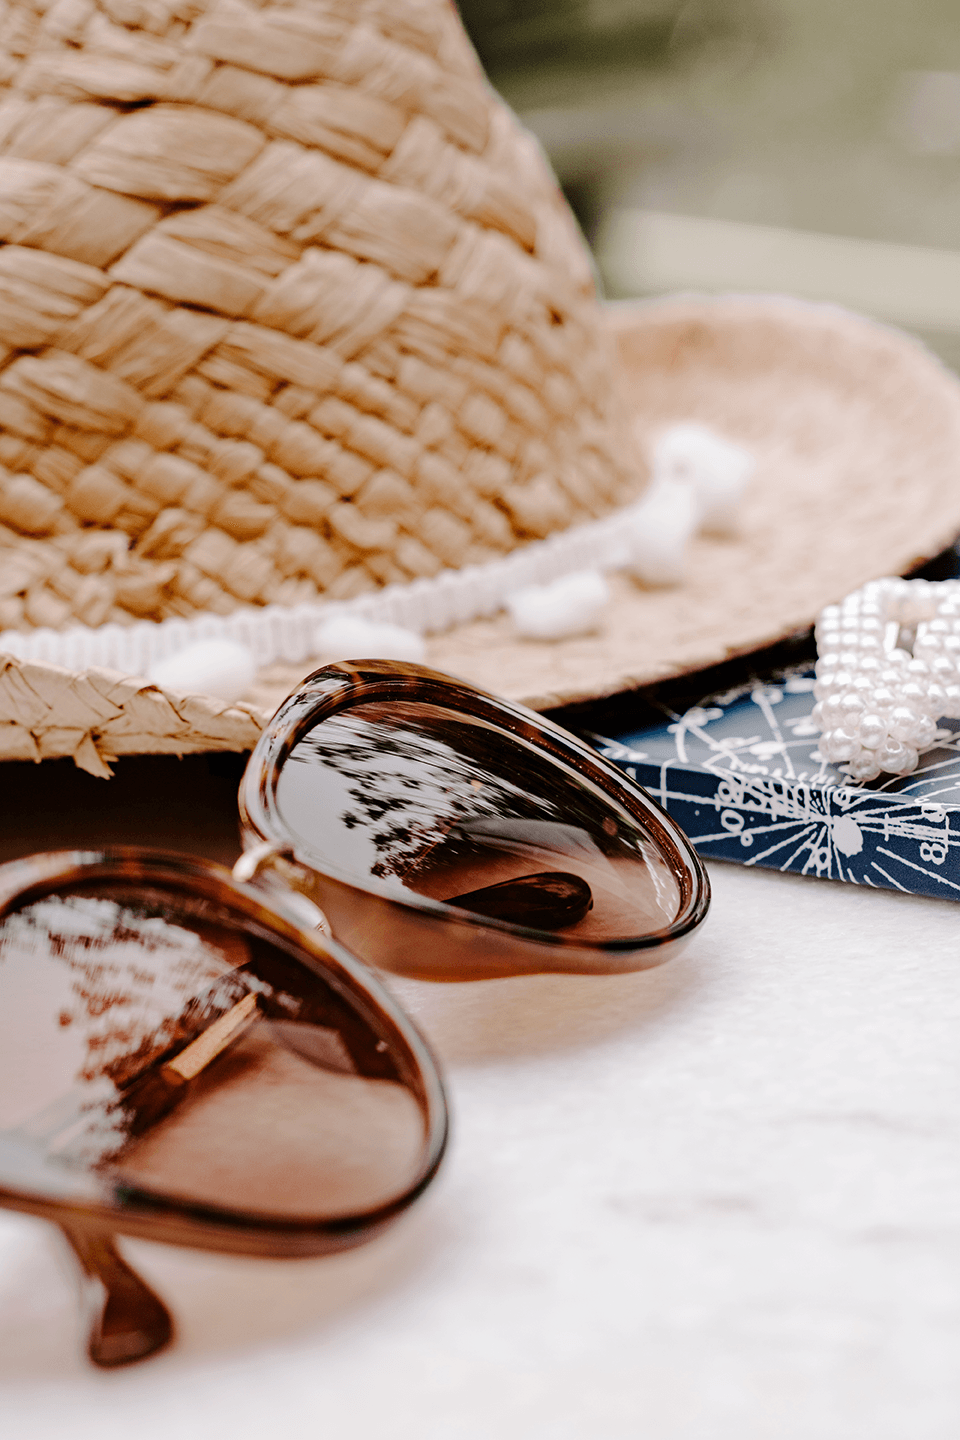 #Lifestyle #Travel I Sunglasses Straw Hat | Summer concept I Single Photo - Grand & Lovely Stock styled photography desktops lifestyle screens desktops stationary